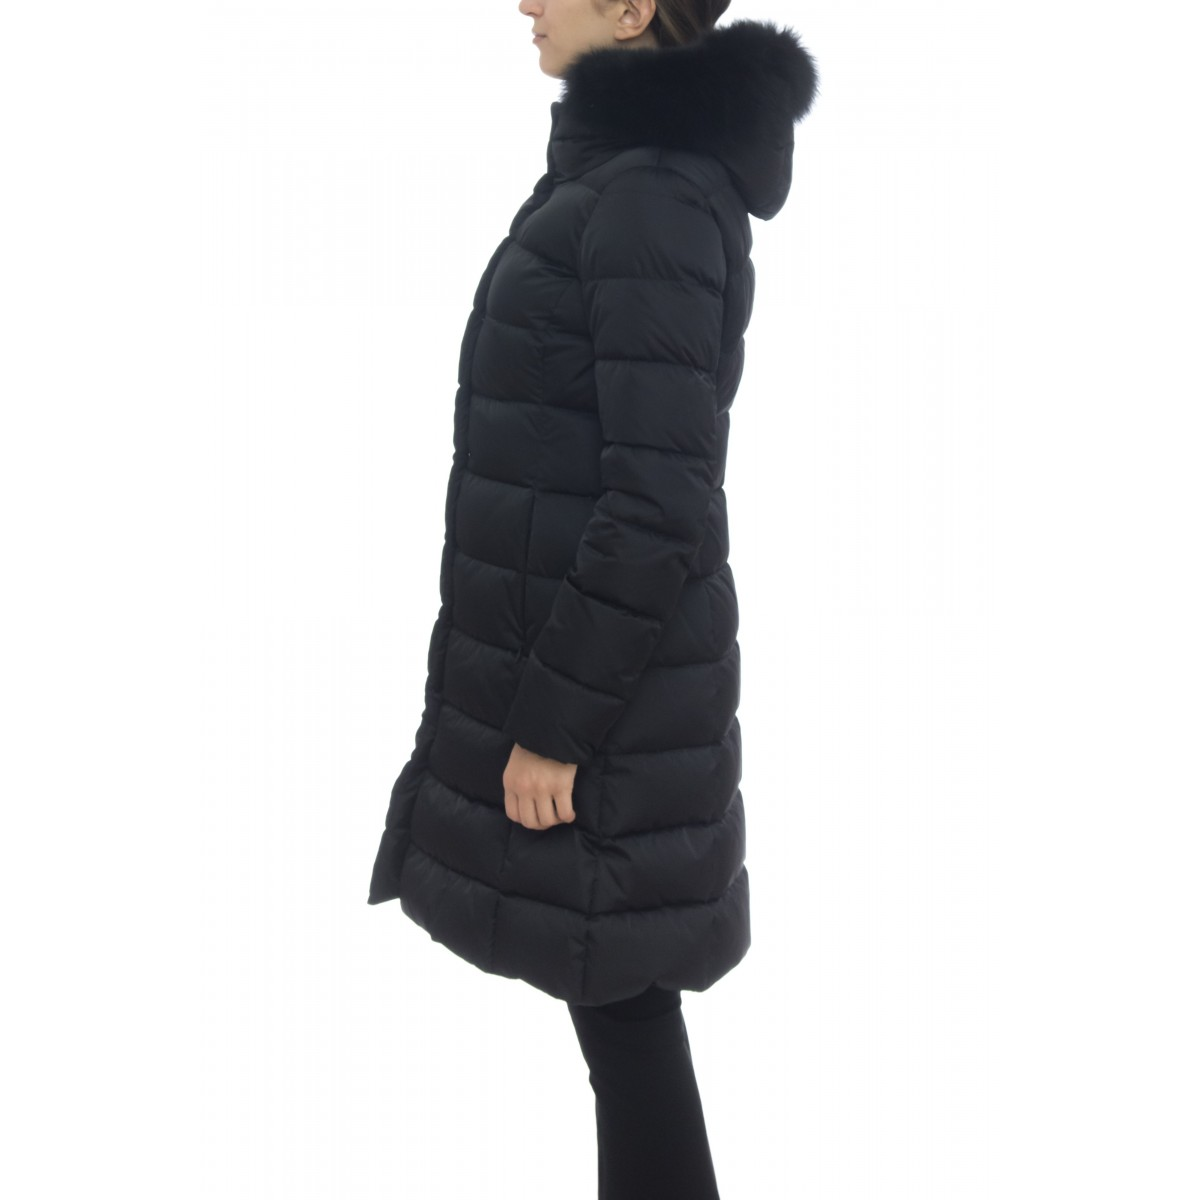 Down jacket - PI0987D 12170 long down jacket with fox fur